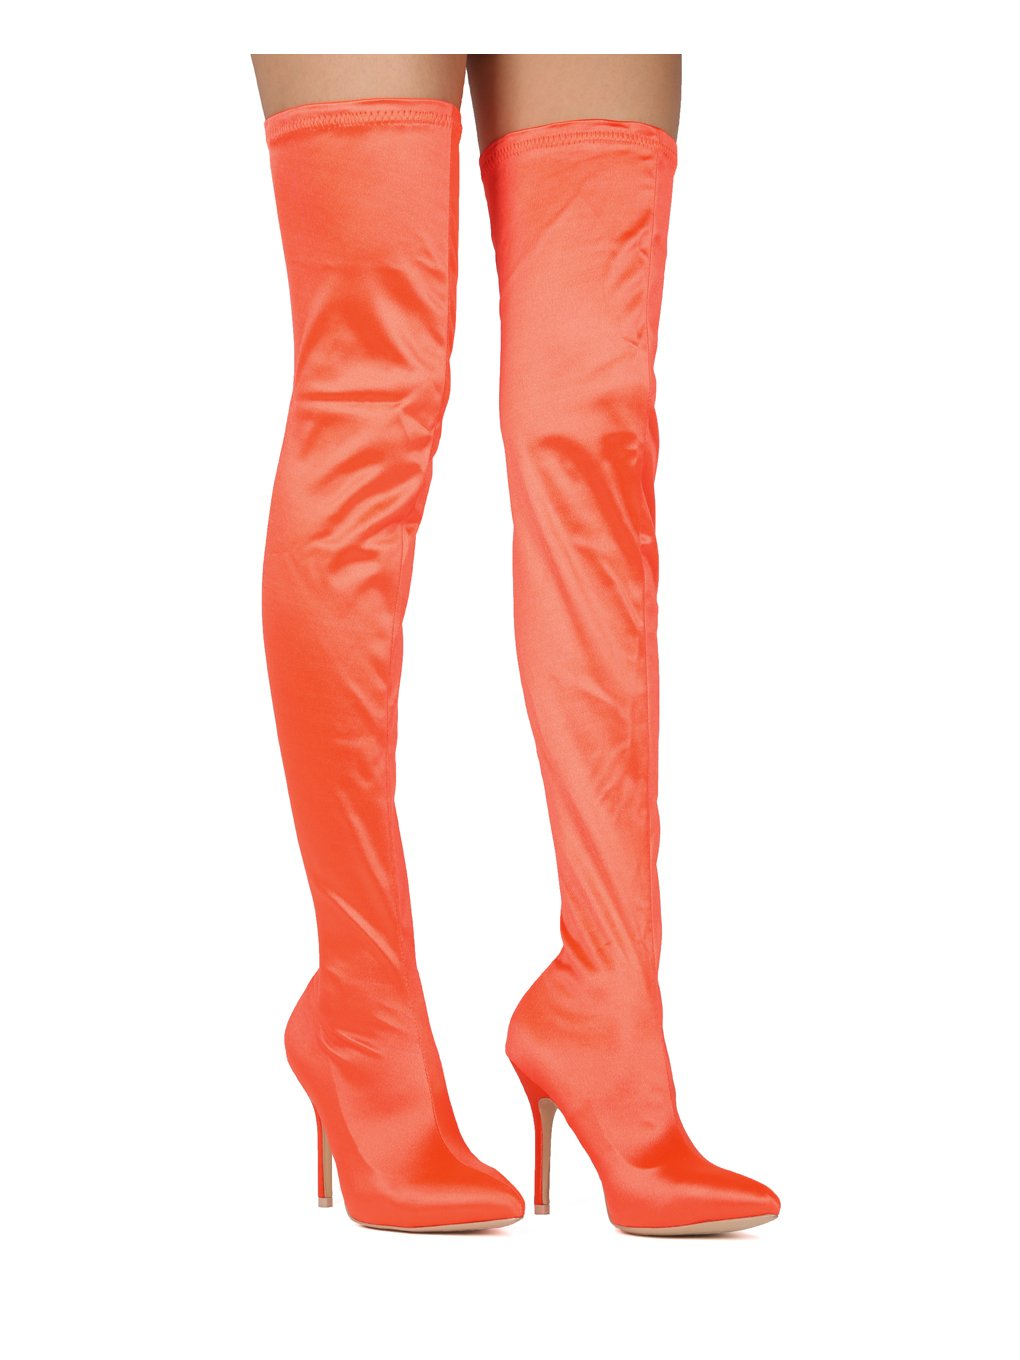 Alrisco Women Satin Thigh High Pointy Toe Stiletto Stocking Boot HE61 - Orange Satin (Size: 9.0)